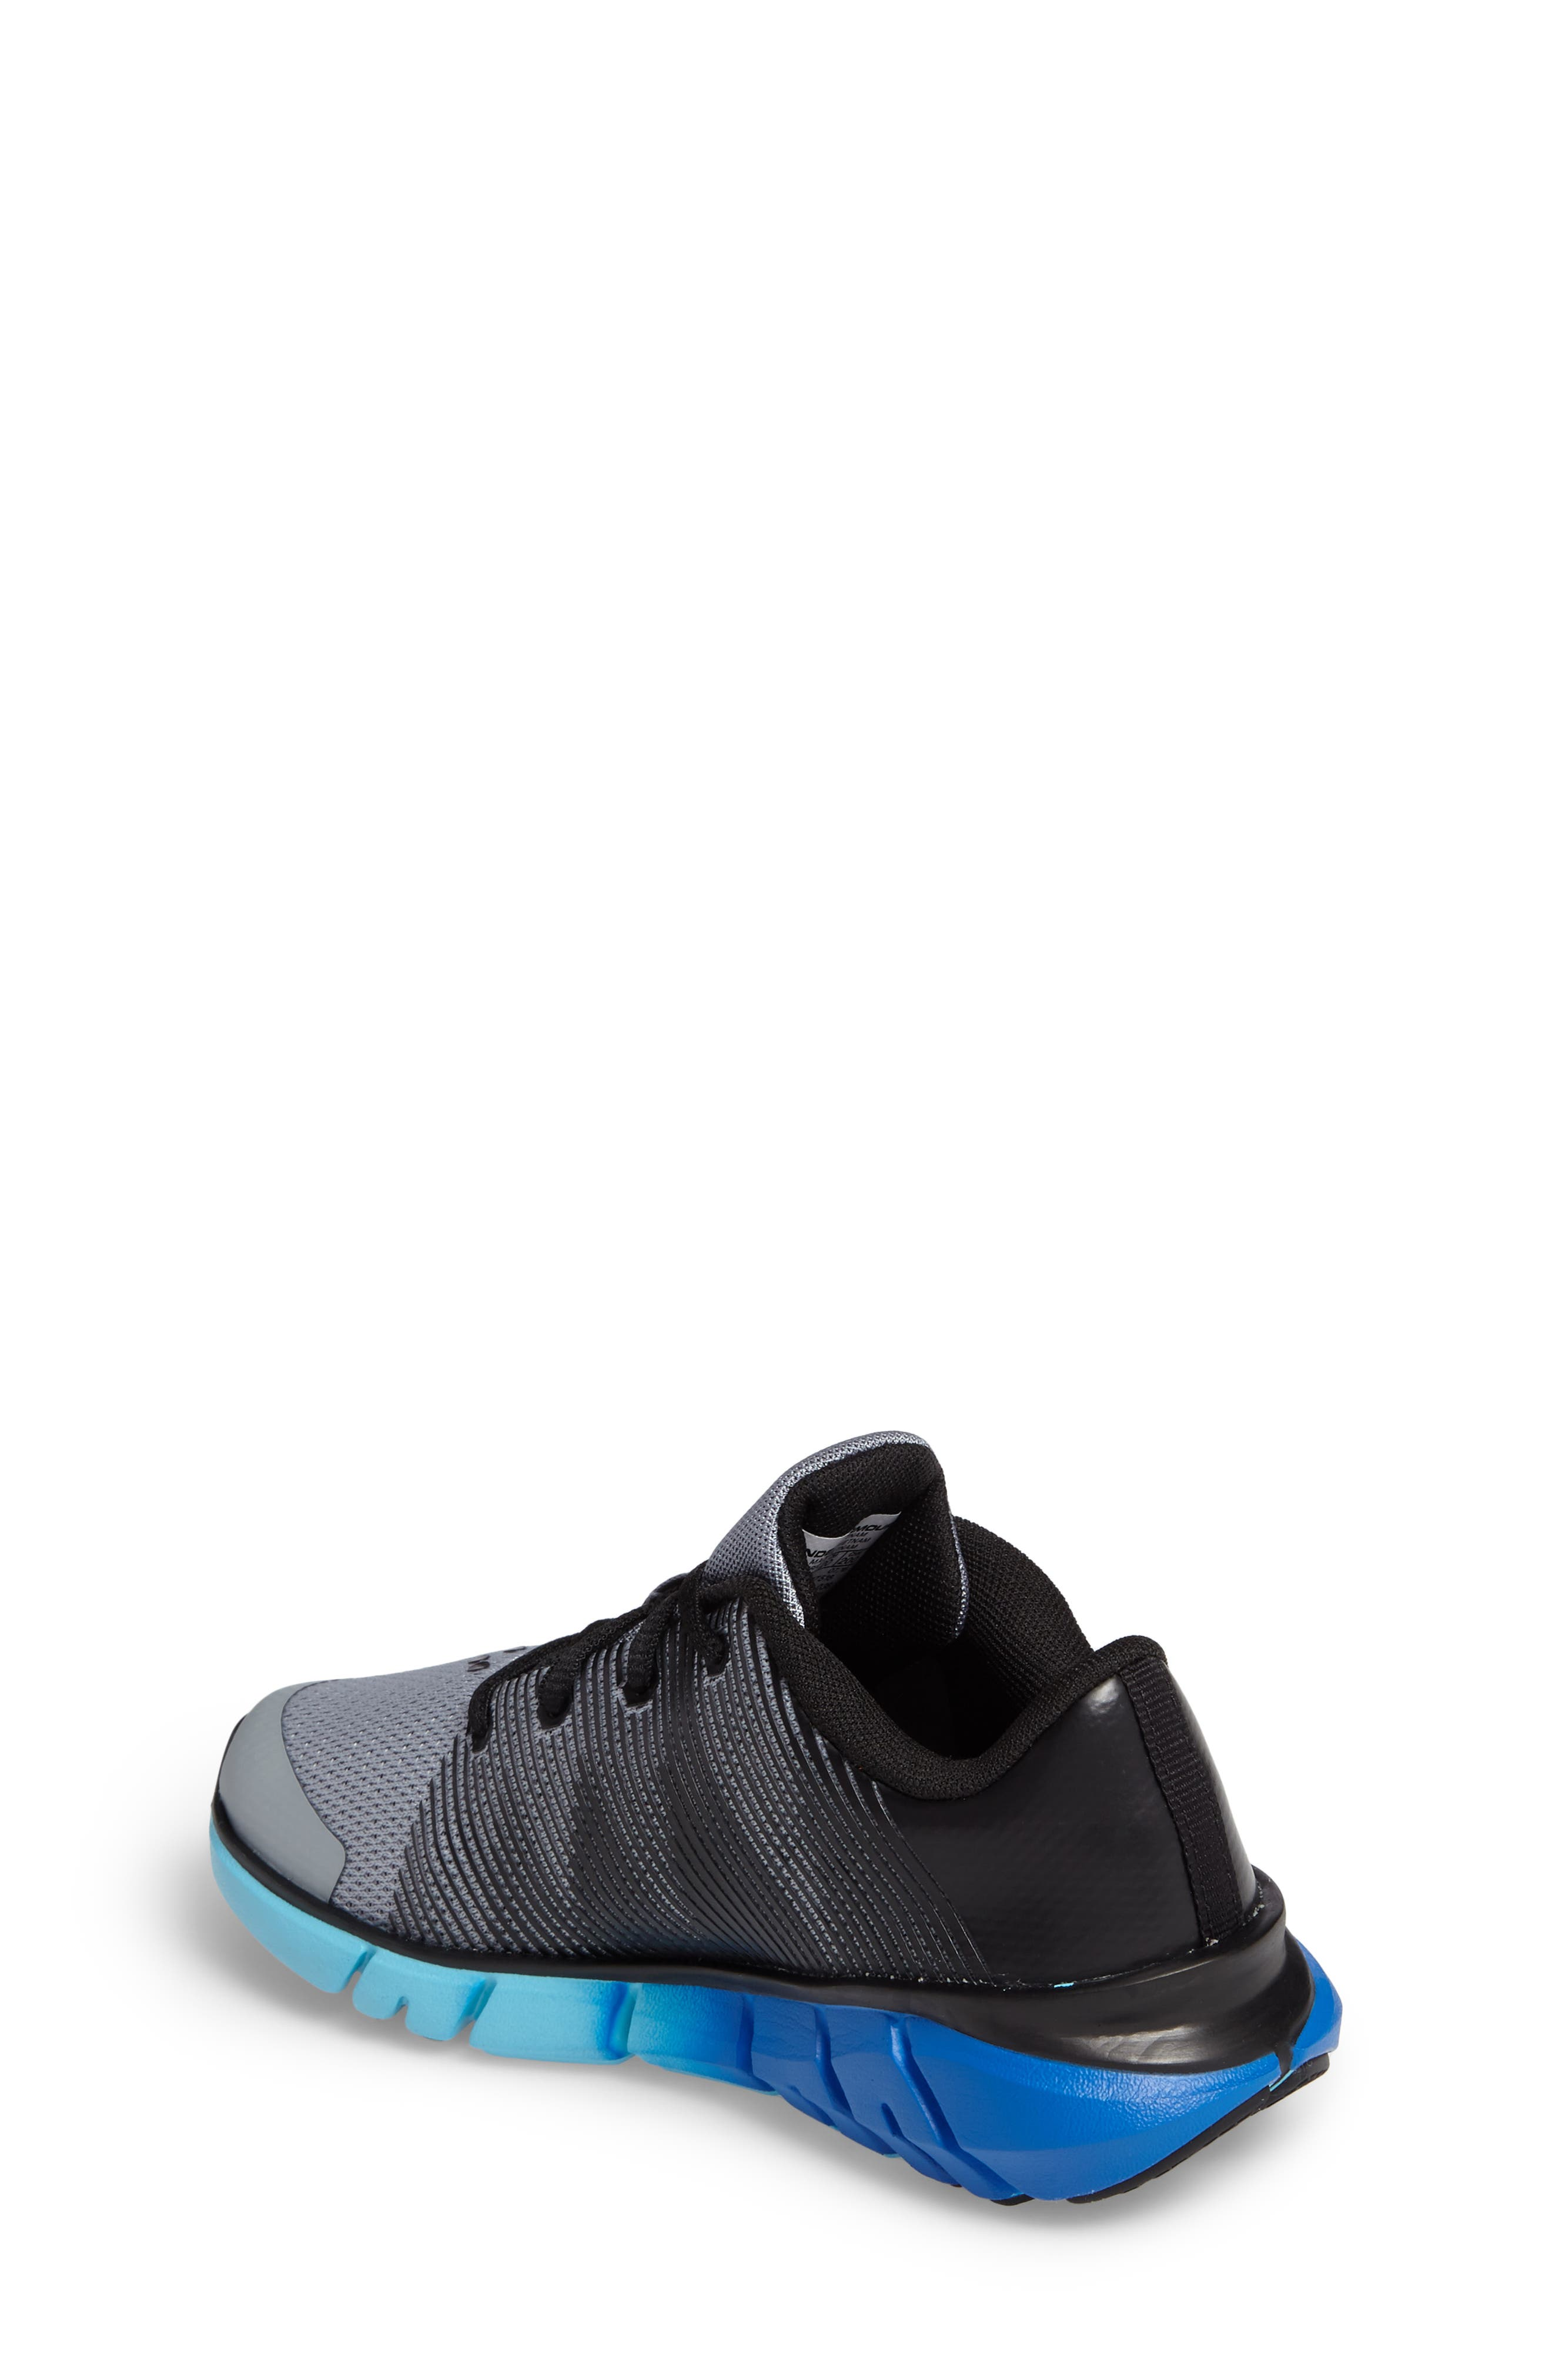 BGS X Level Scramjet Running Shoe,                             Alternate thumbnail 2, color,                             036